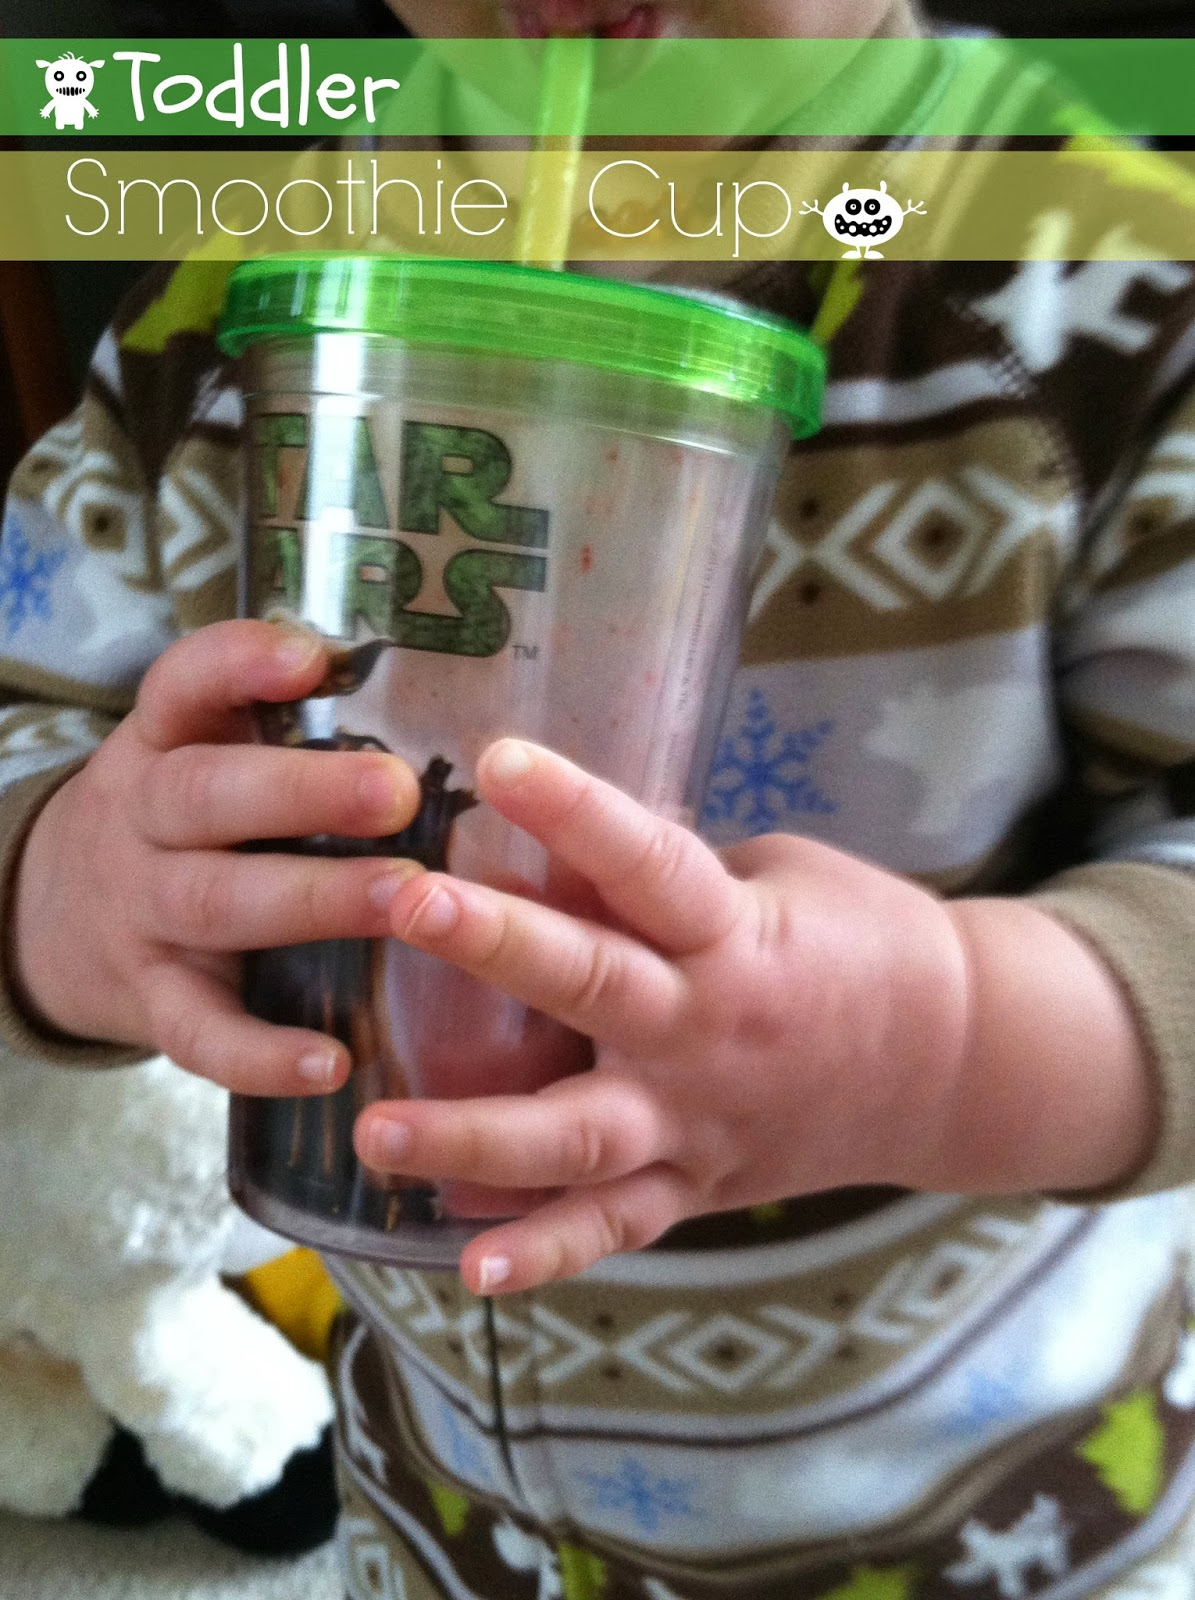 Toddler Smoothie Cup